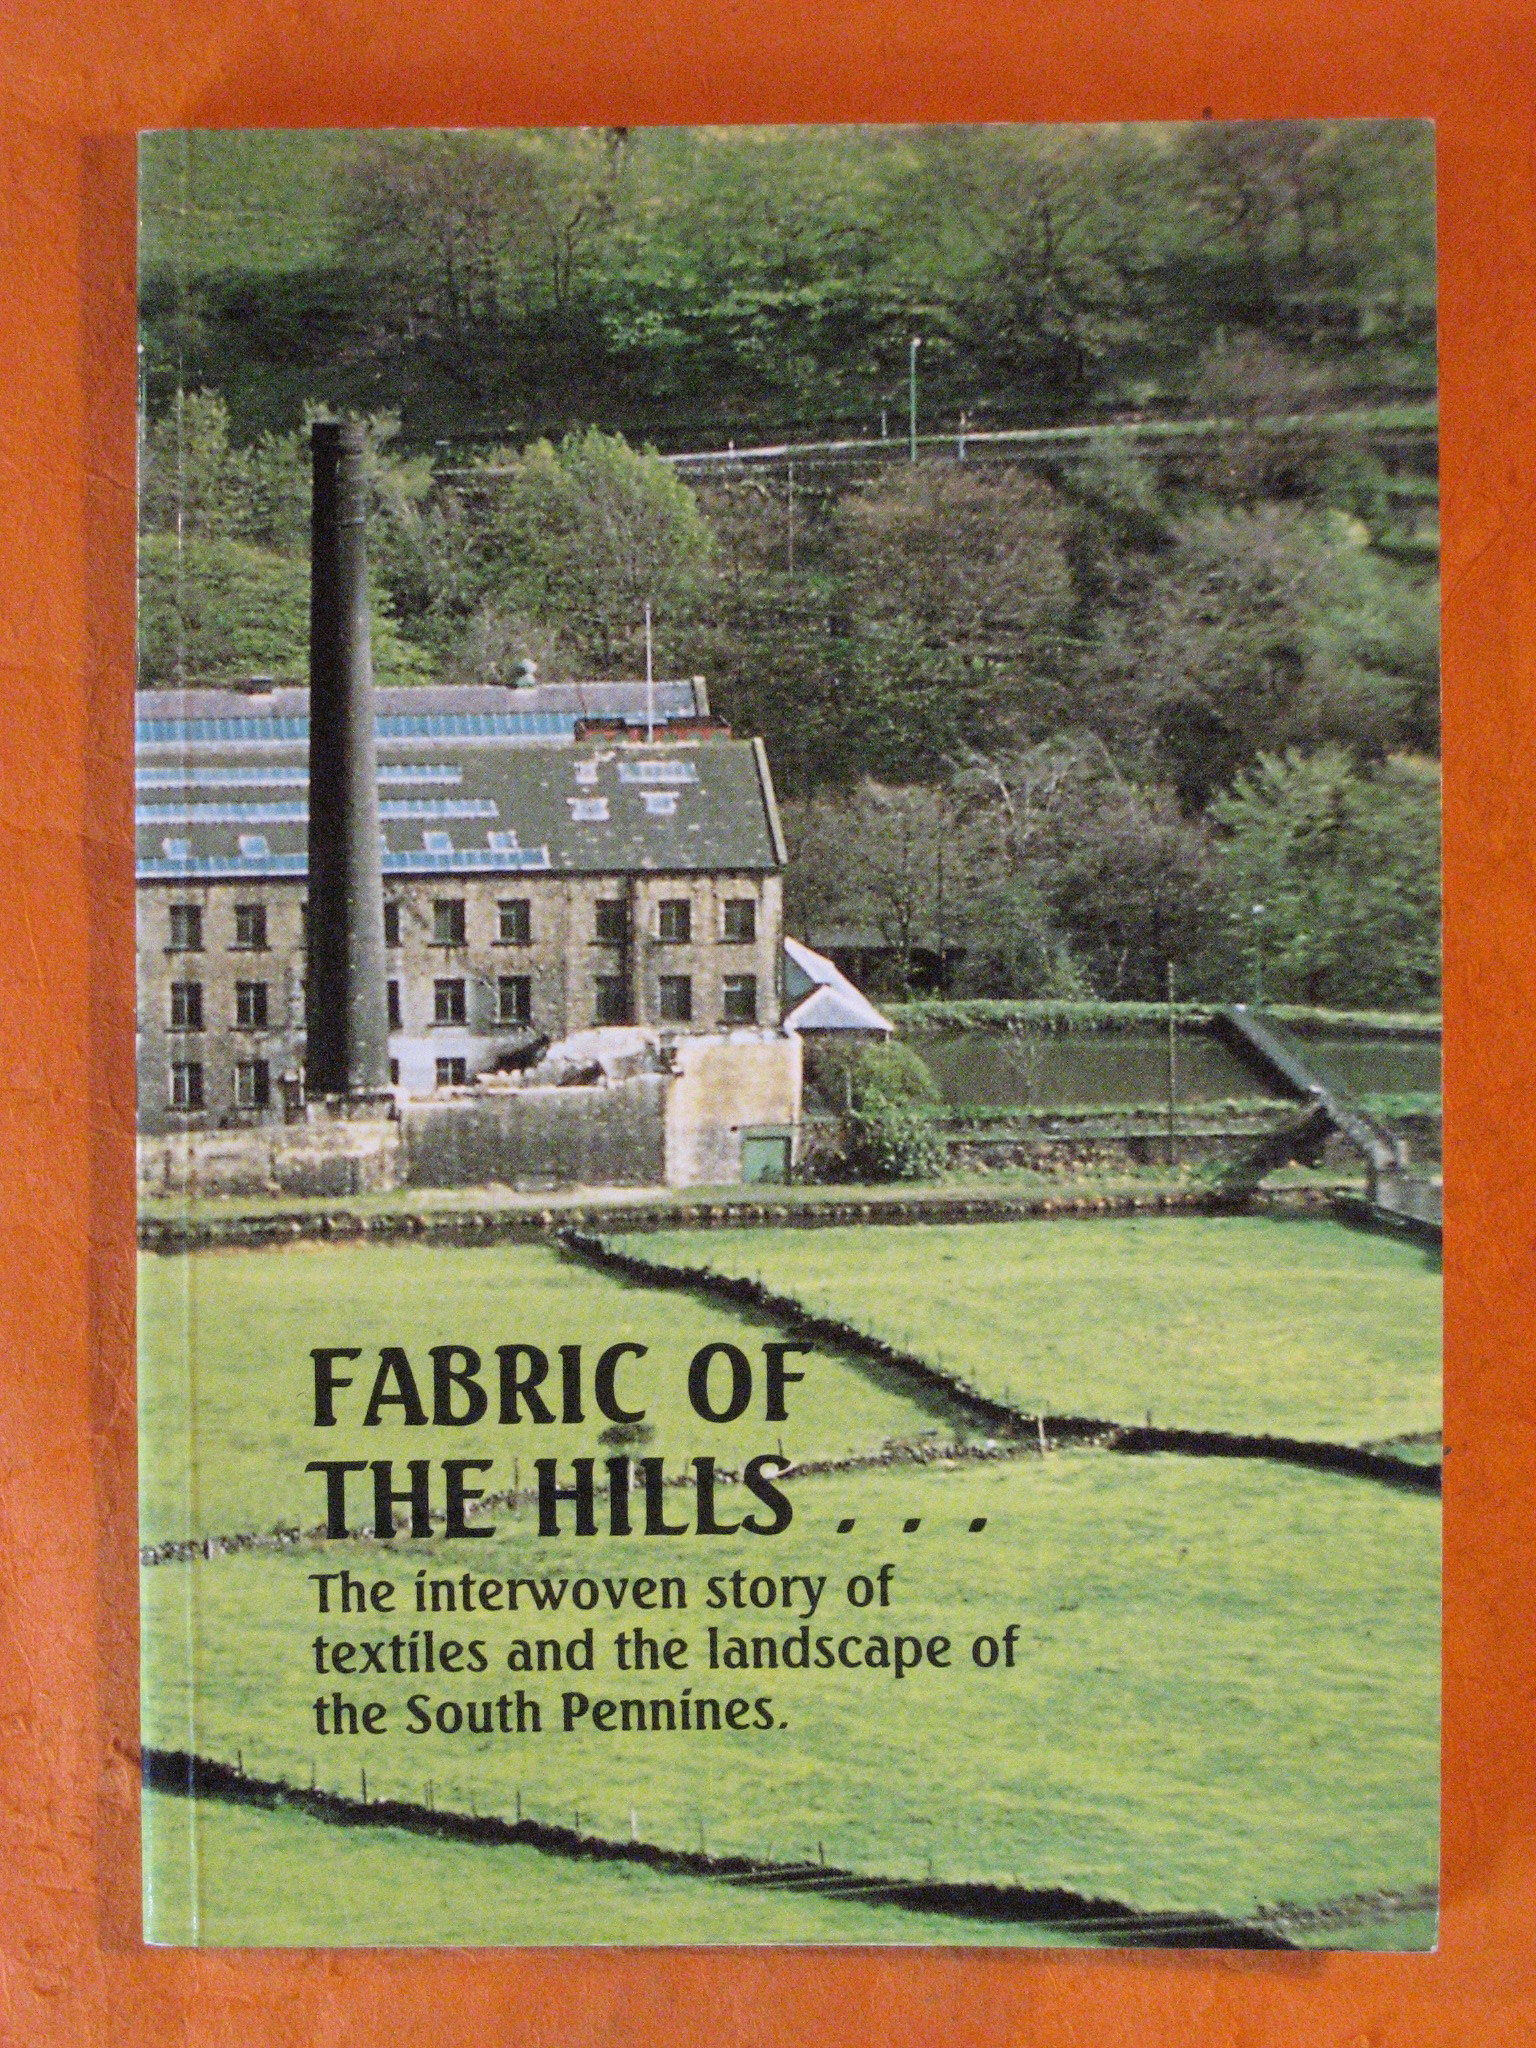 Fabric of the Hills: The Interwoven Story of Textiles and the Landscape of the South Pennines